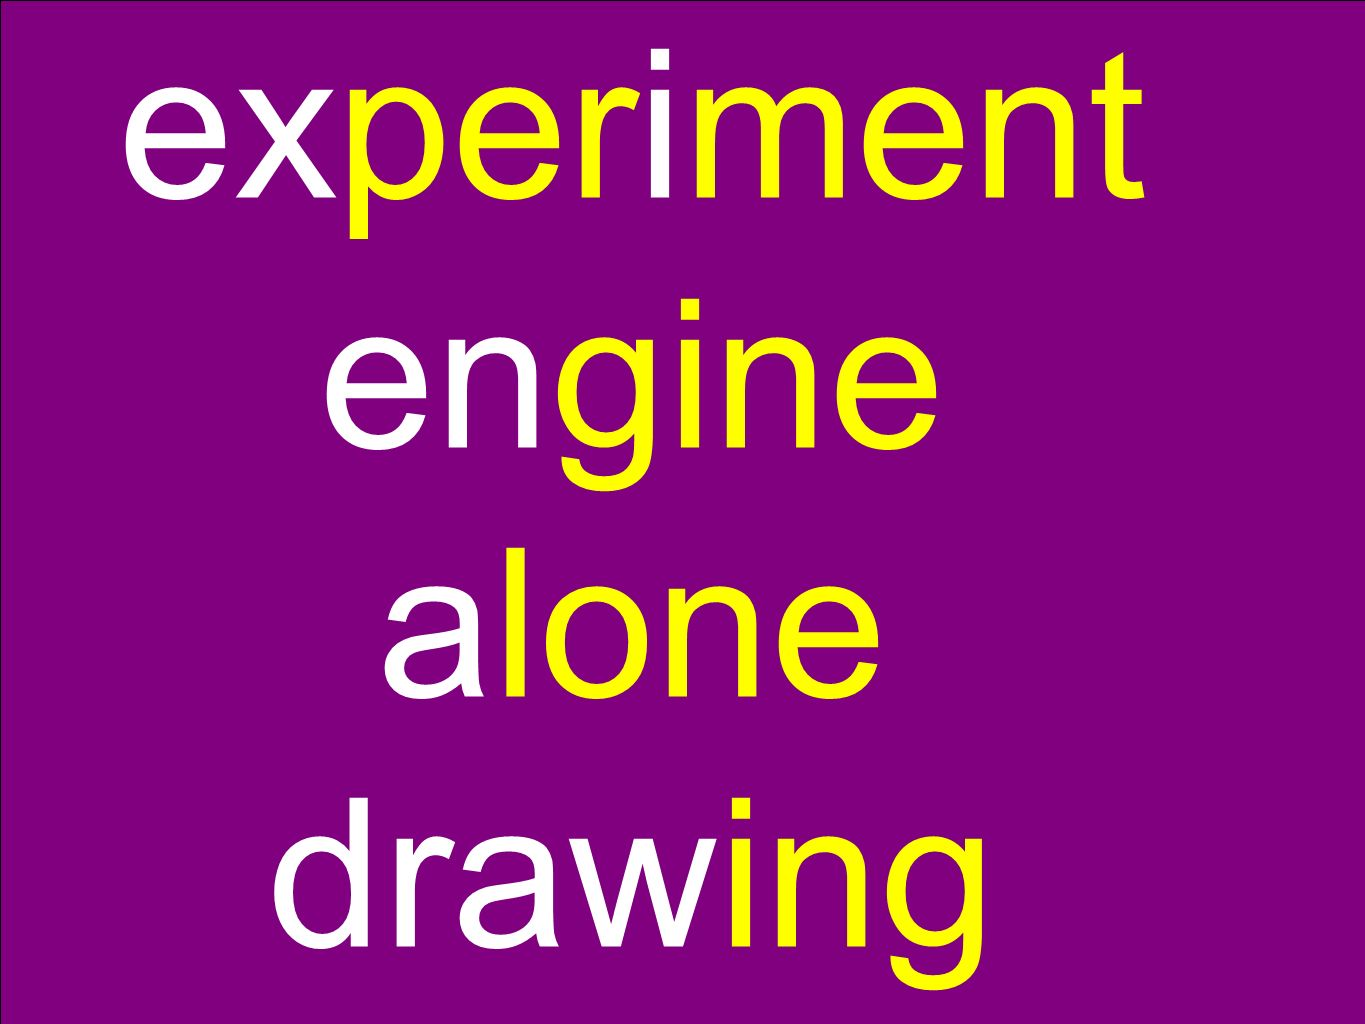 experiment engine alone drawing